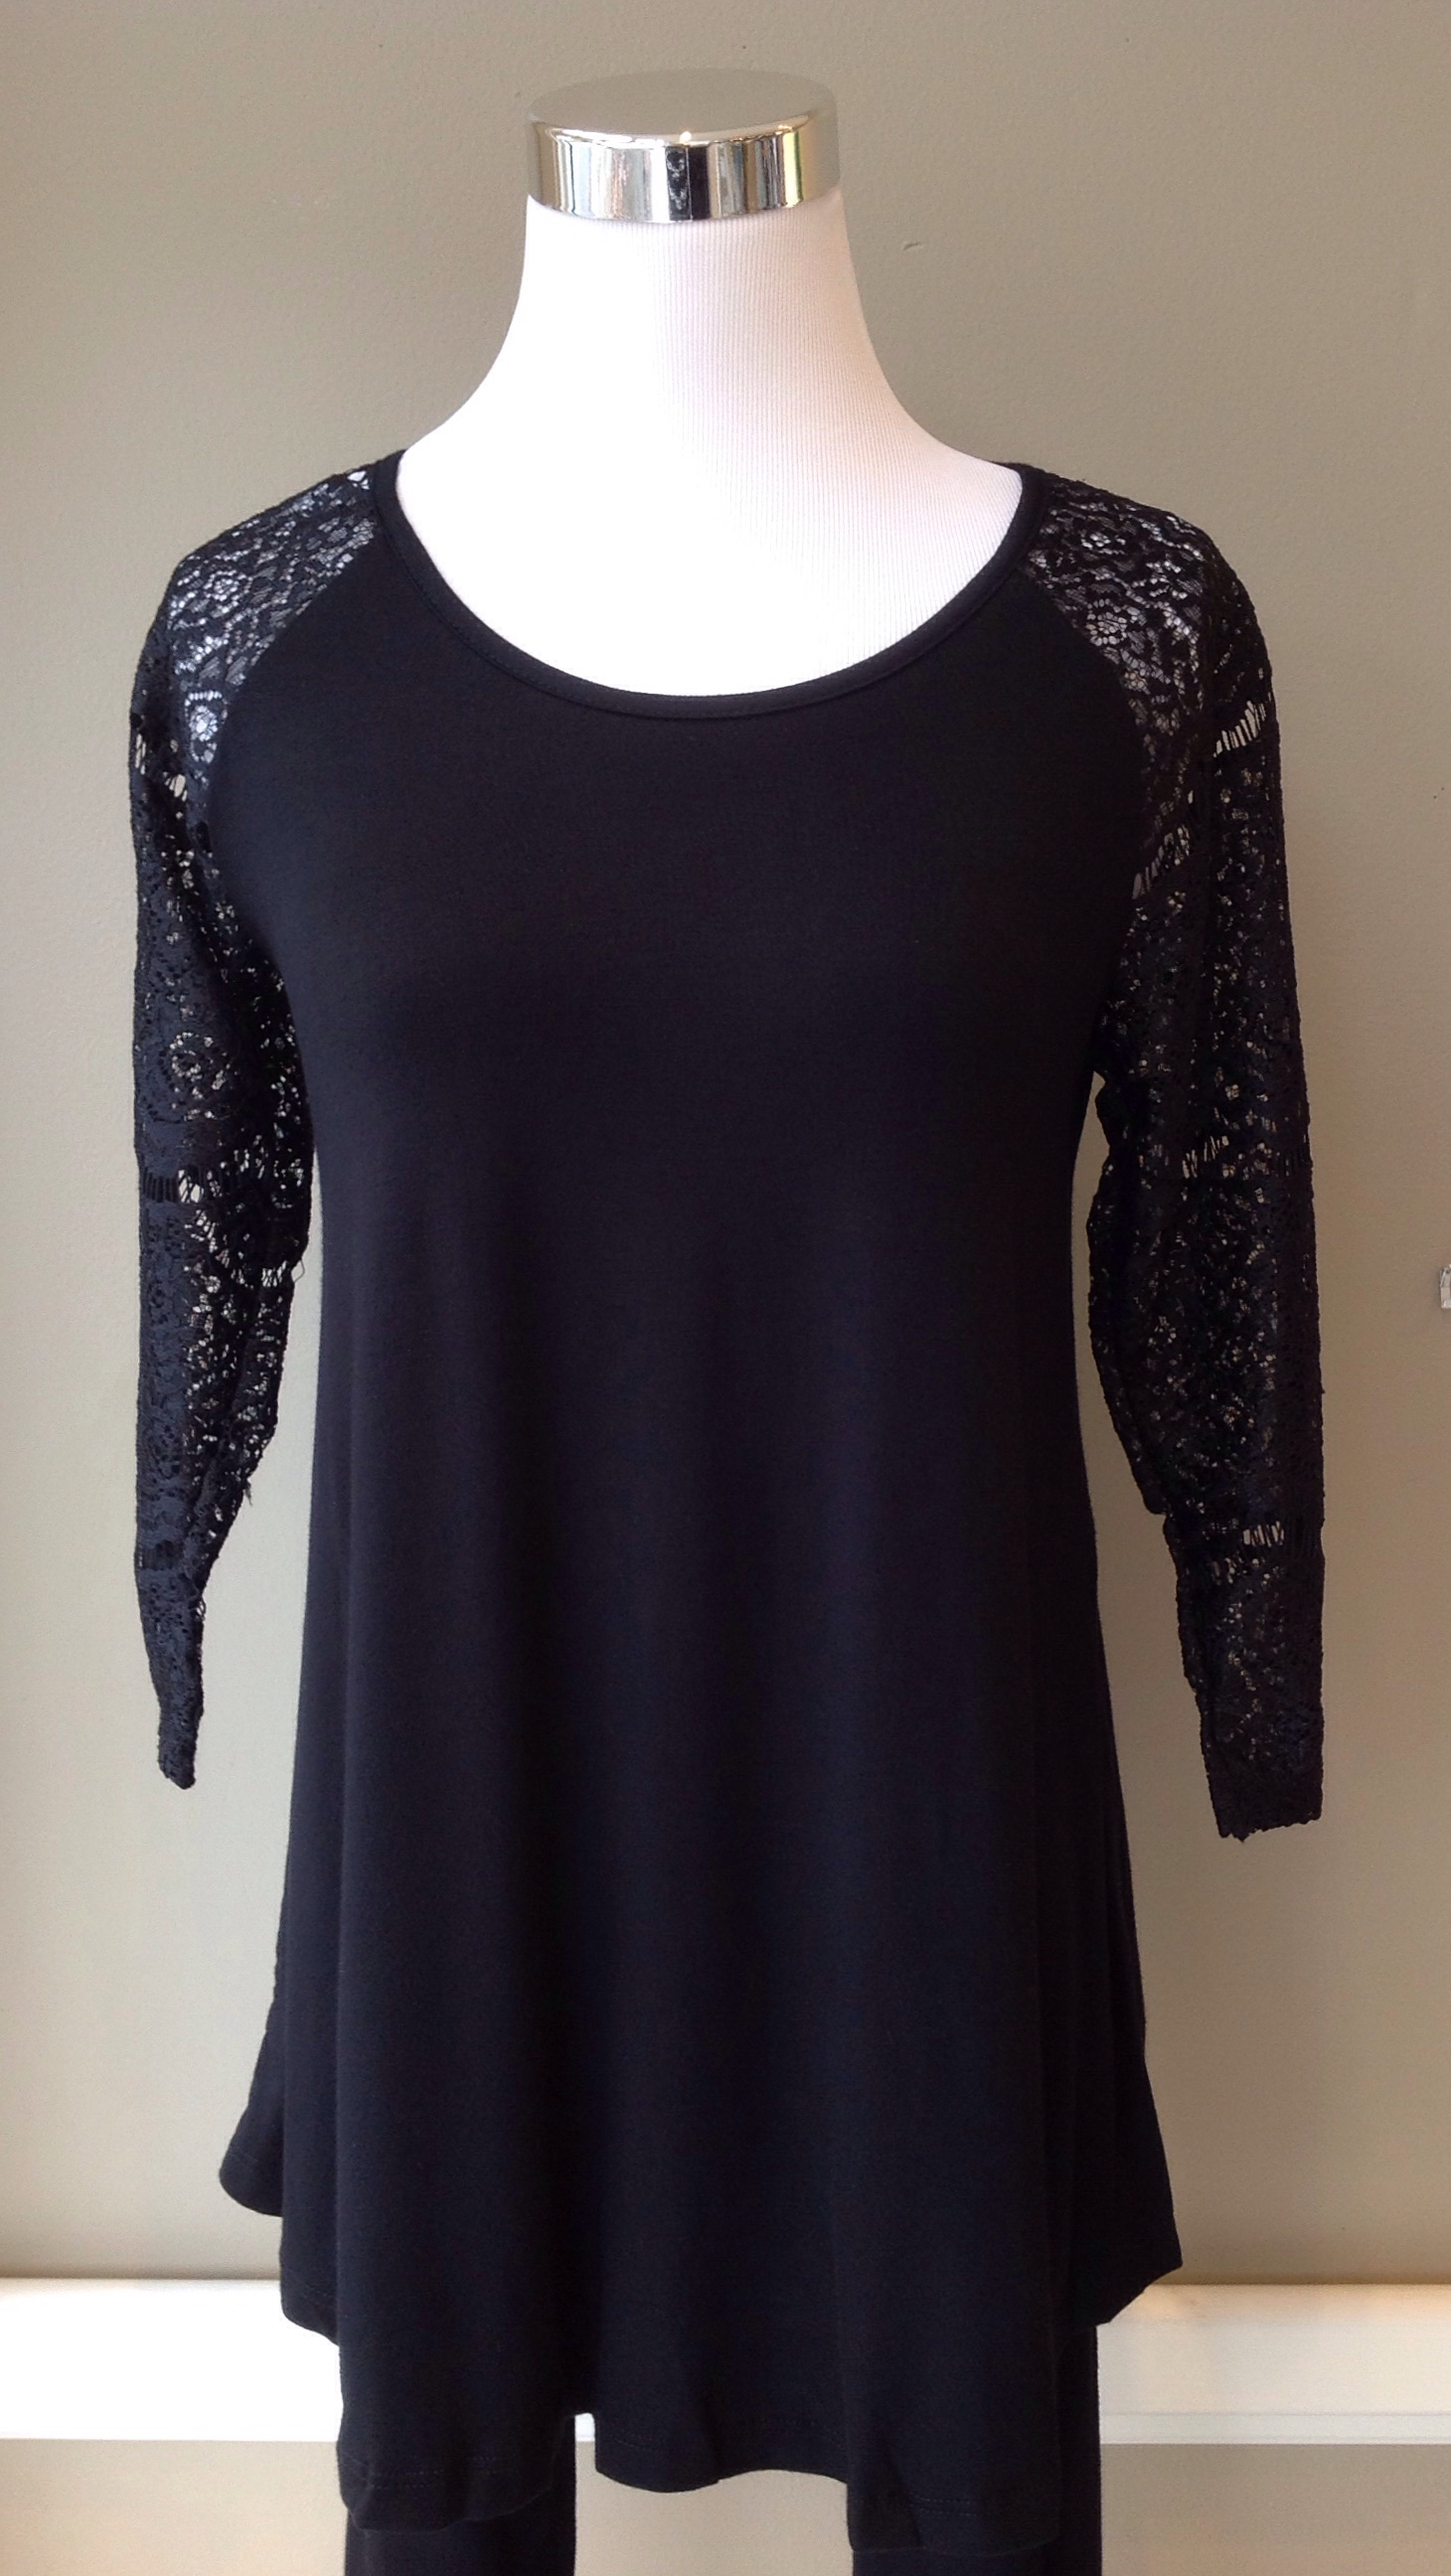 Black jersey knit top with 3/4 lace sleeves, $34